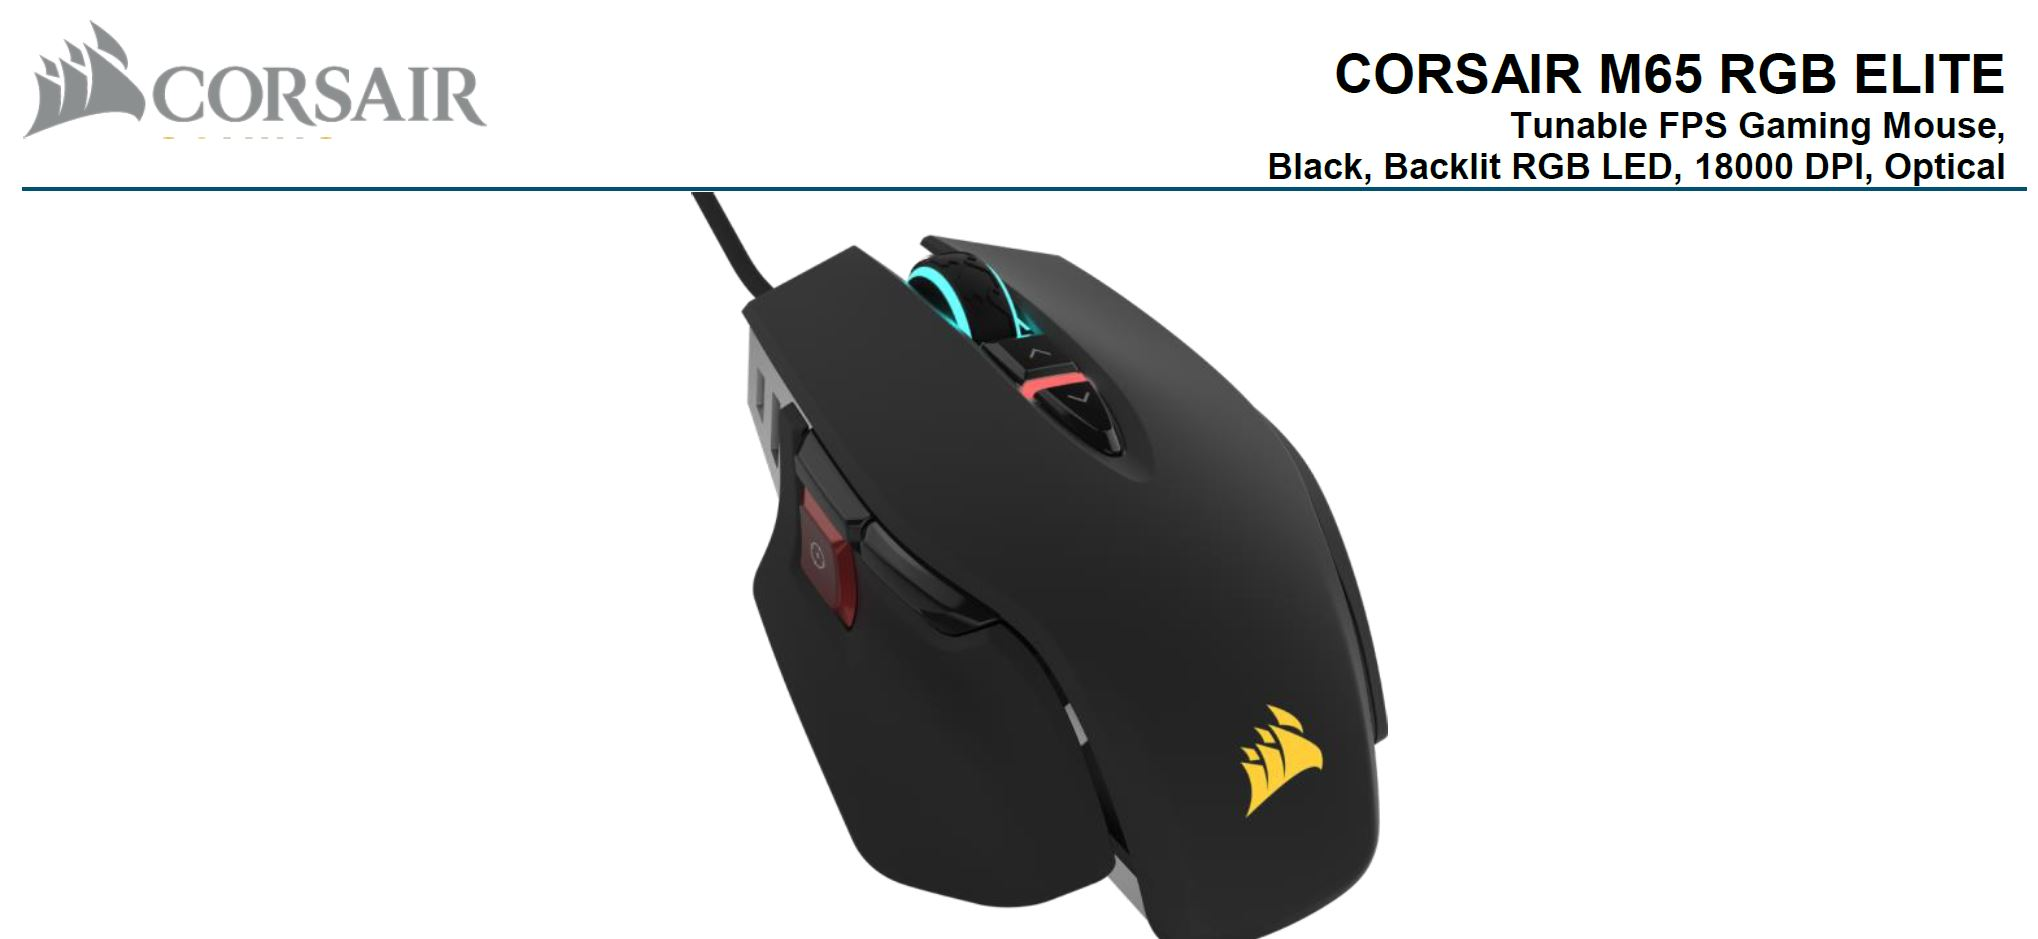 Corsair, M65, RGB, ELITE, Tunable, FPS, Gaming, Mouse, Black, 18000, DPI, Optical, iCUE, Software.,